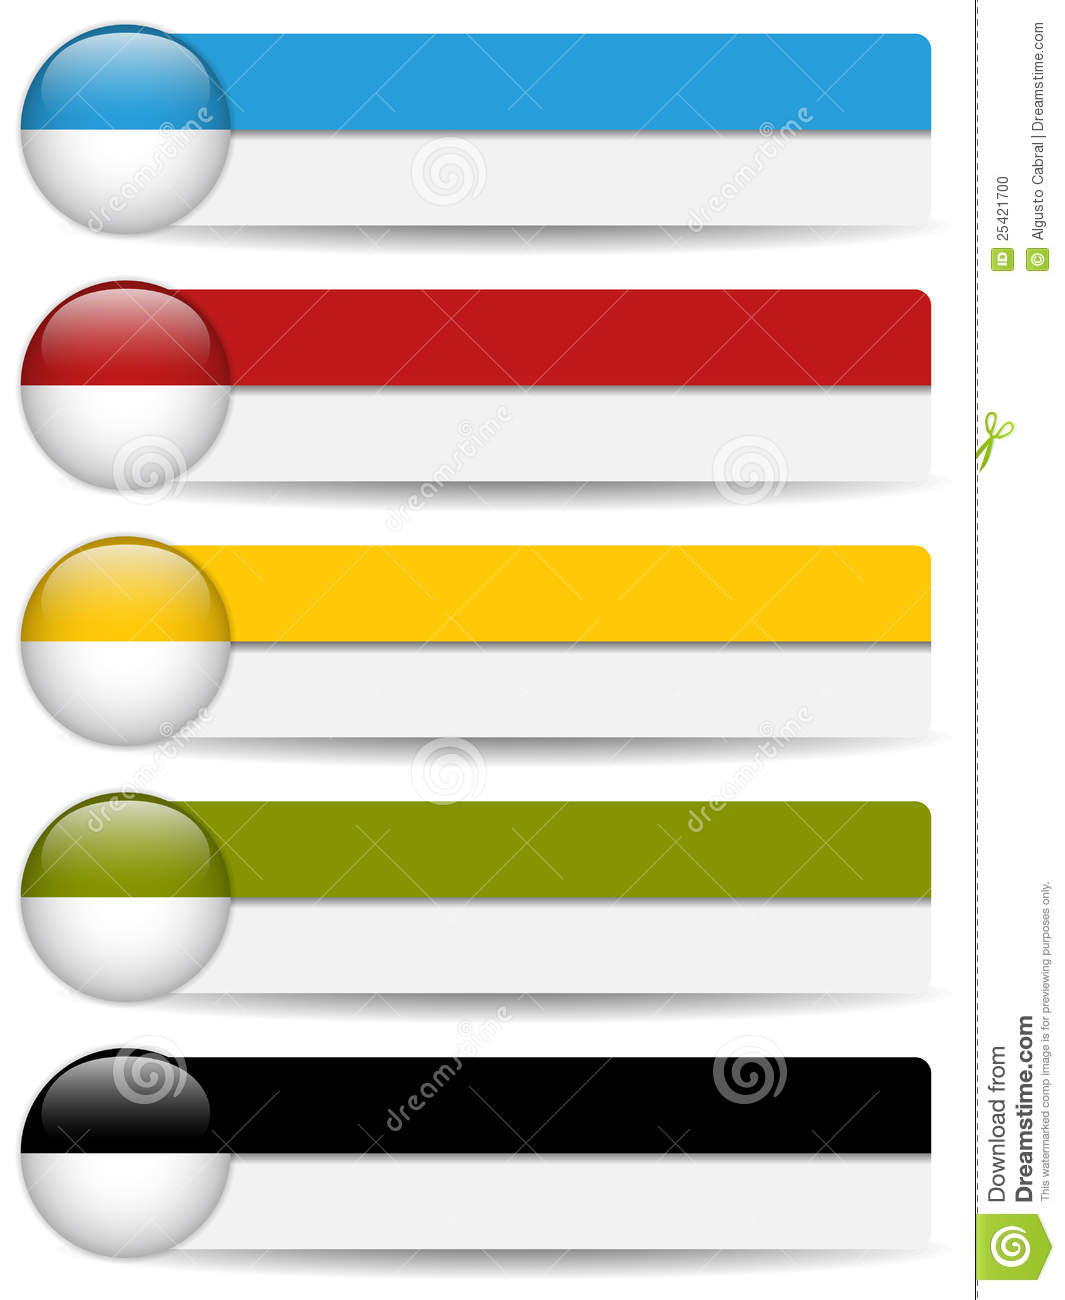 Glossy Web Buttons With Colored Bars. Stock Photo.